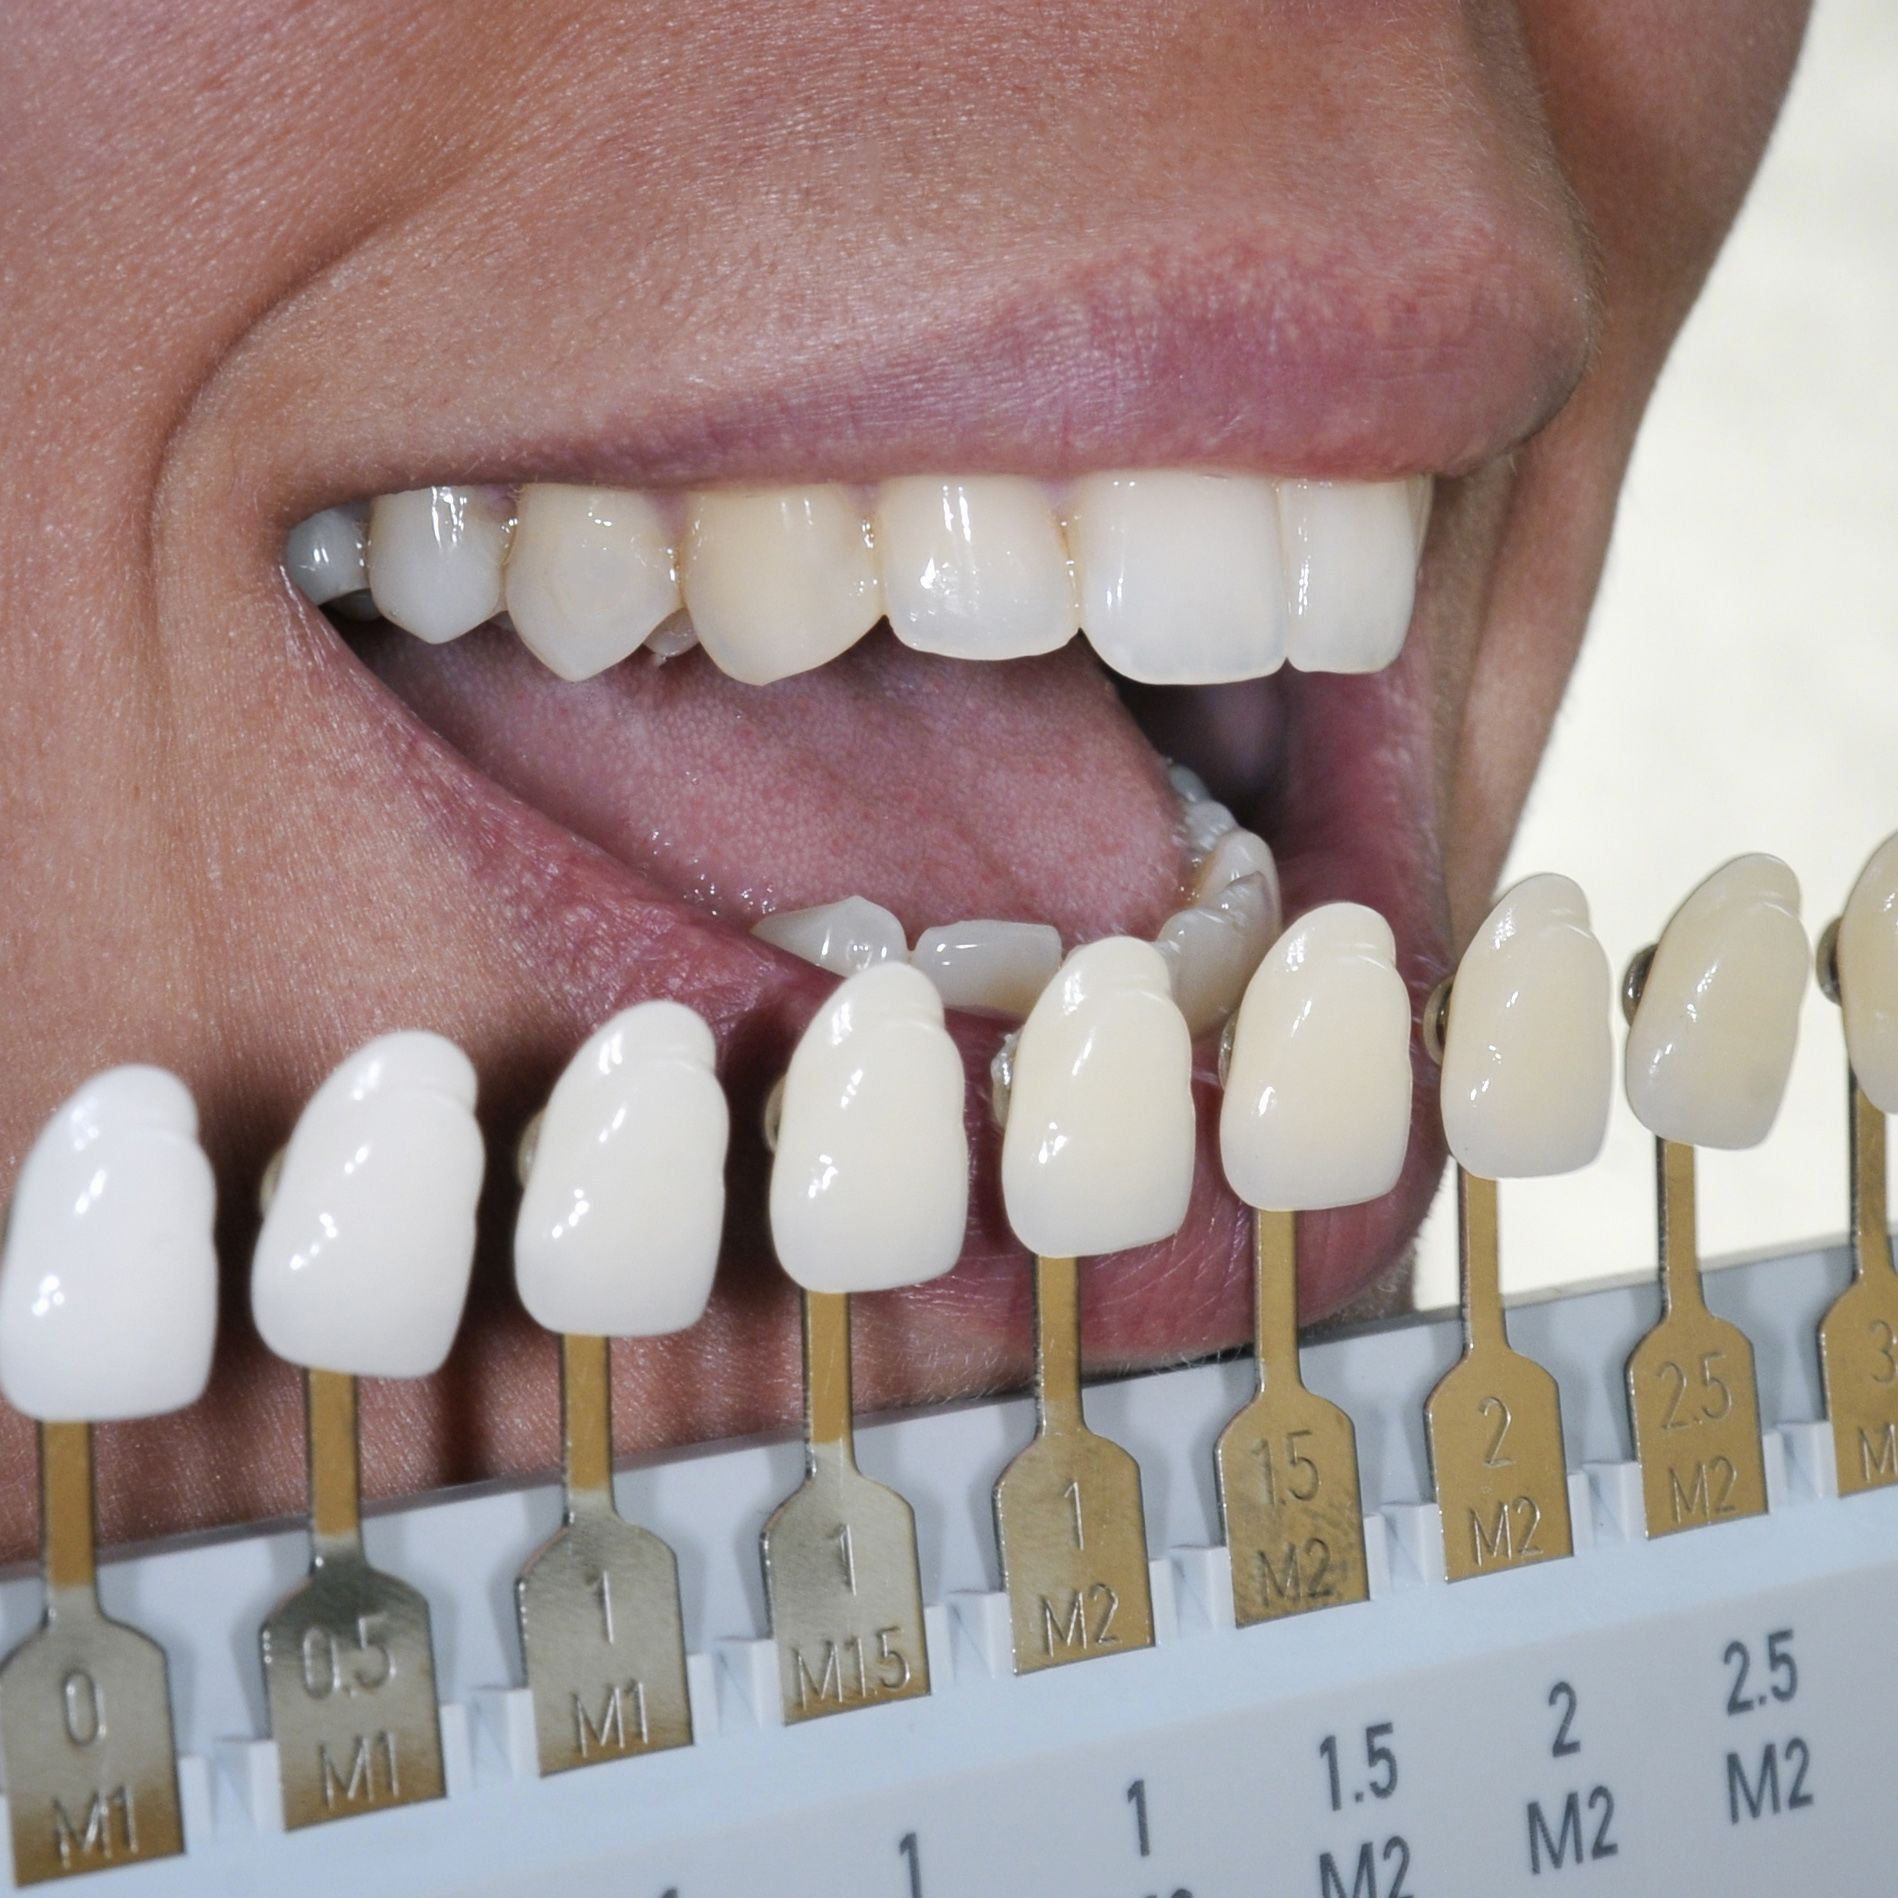 Photo of a shade guide next to teeth